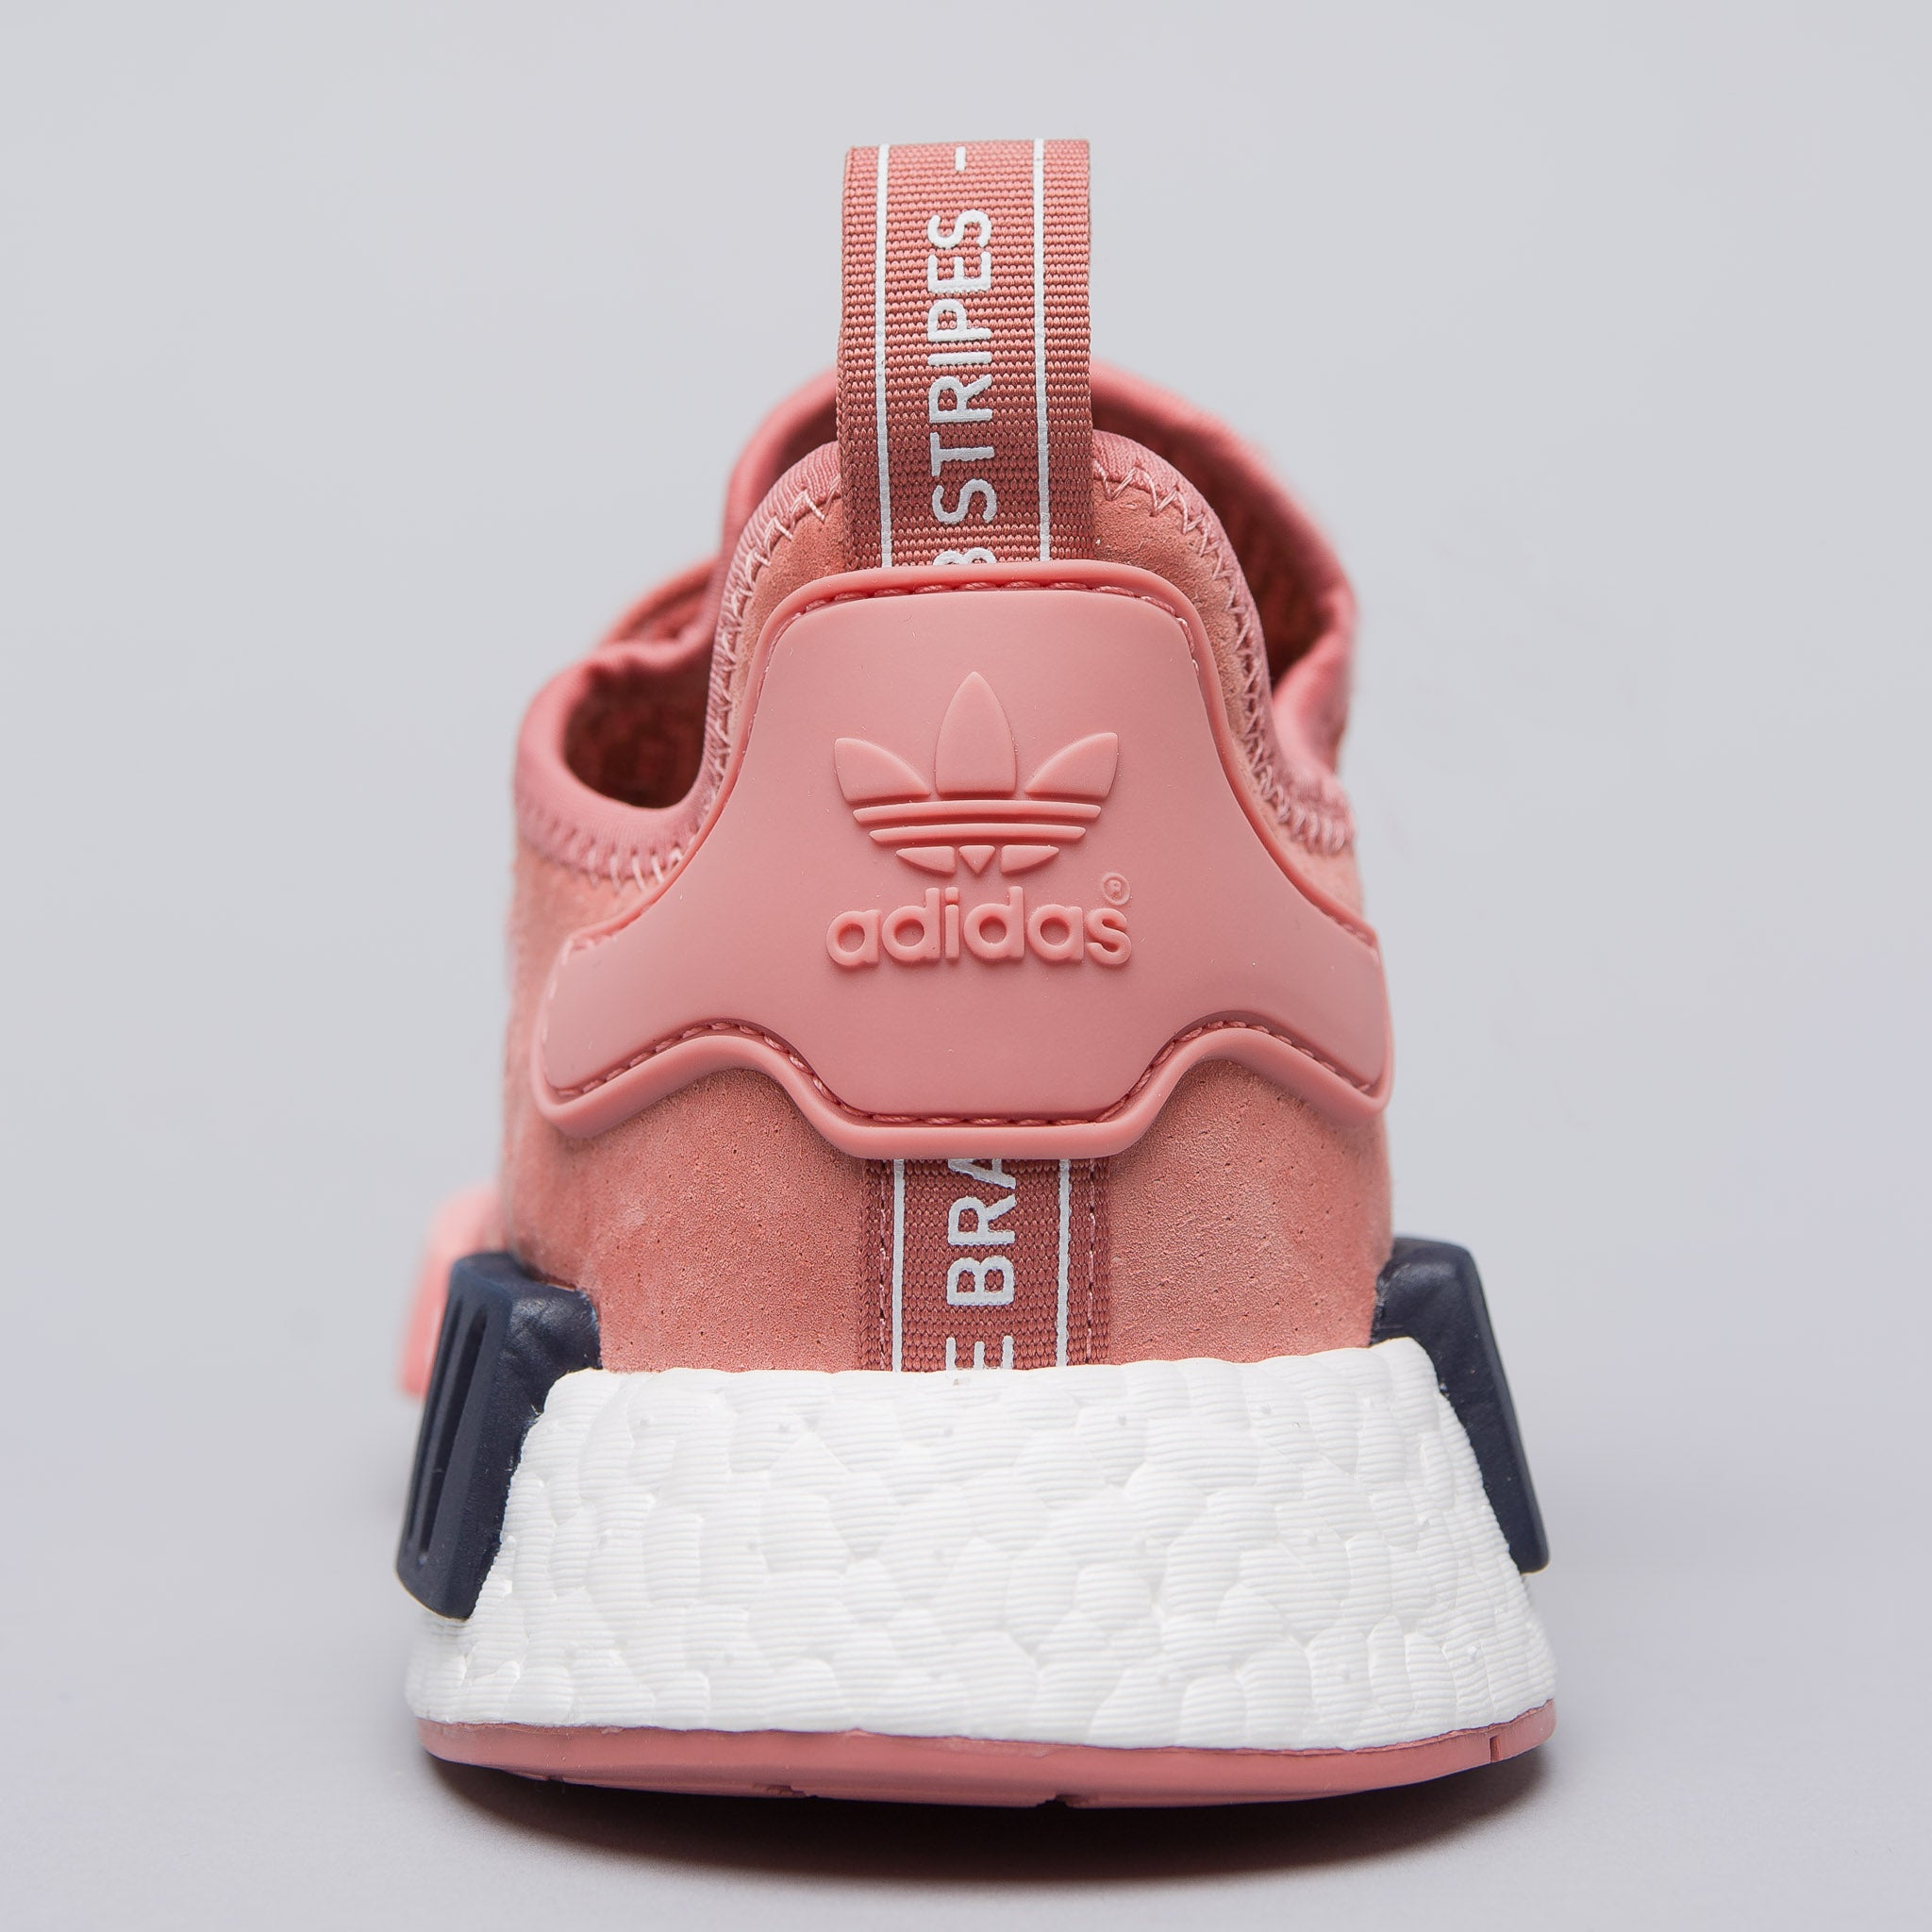 adidas NMD R1 Running Shoes Collection for Women 8 Ba7752